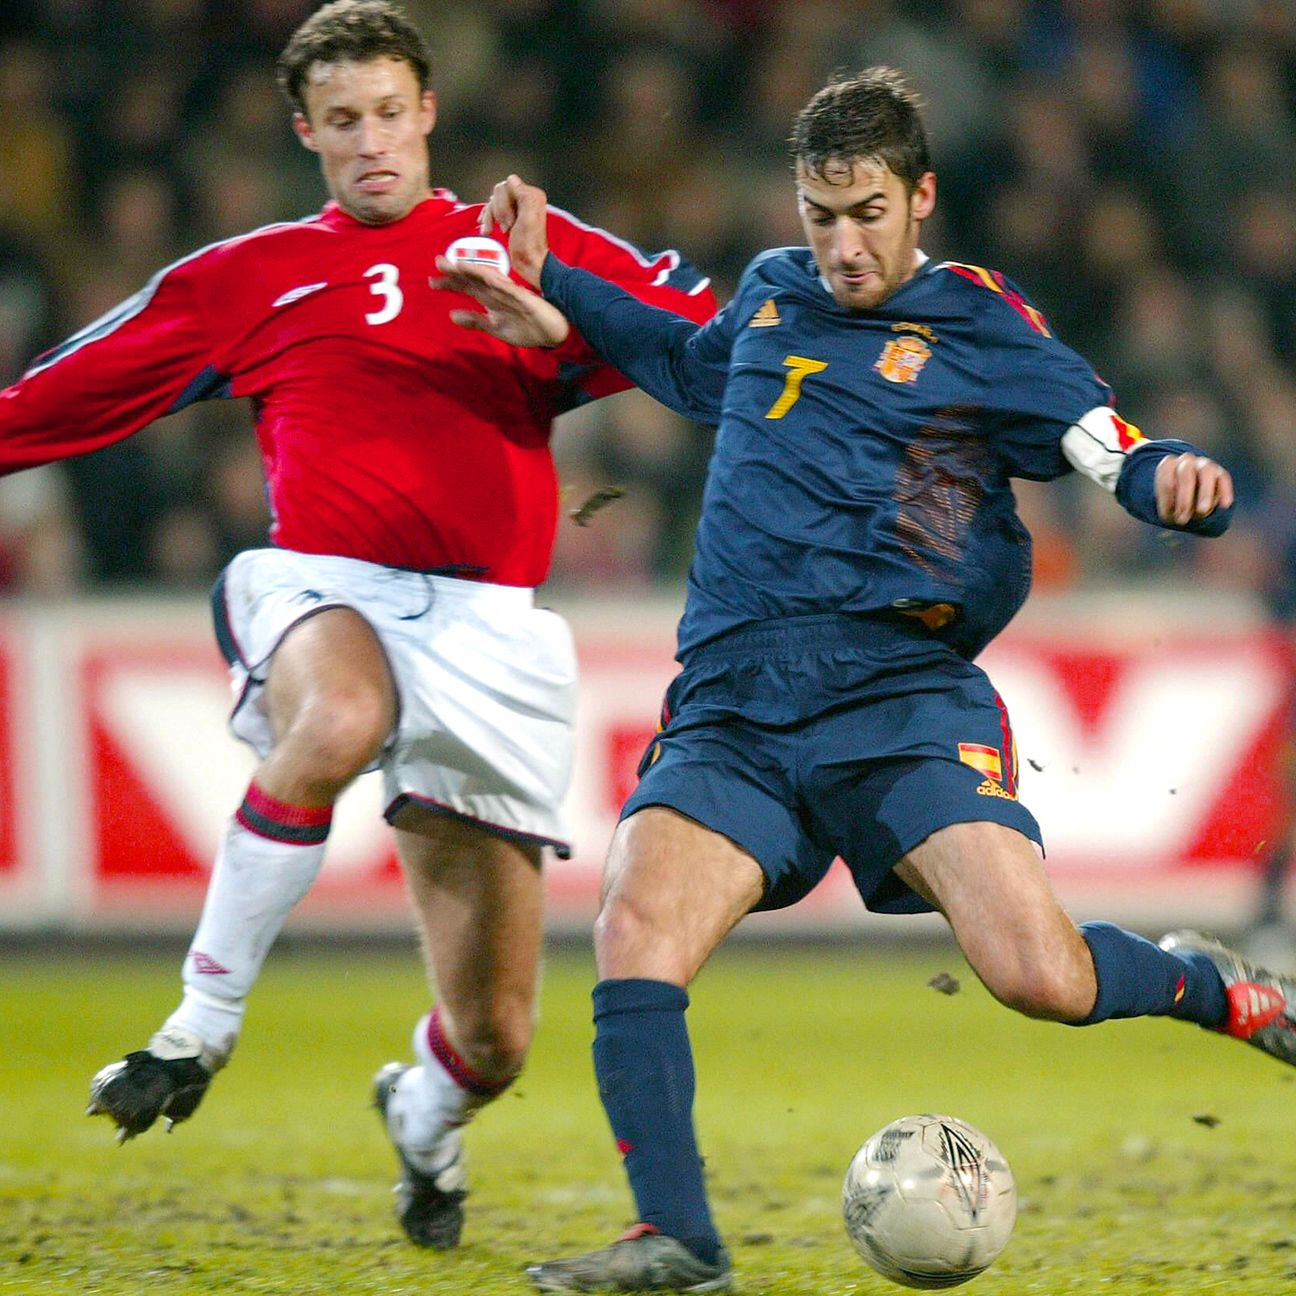 Raul and Spain avenged their Euro 2000 group stage defeat to Norway by downing the Scandinavians in the Euro 2004 playoffs.